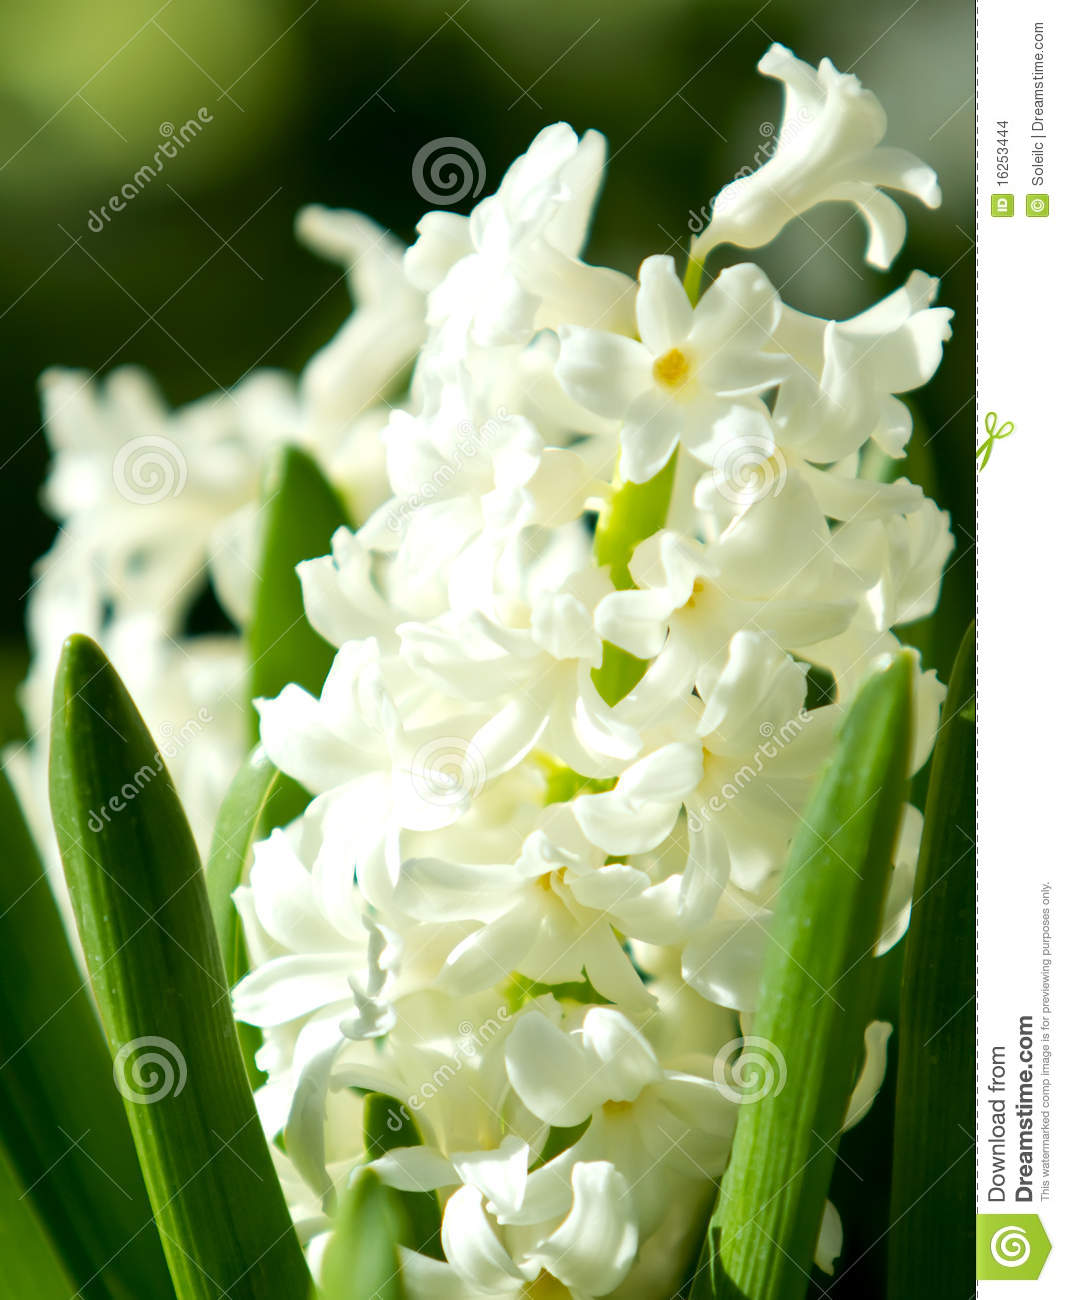 White lily flower stock photo image of blur hyacinth 16253444 white lily flower izmirmasajfo